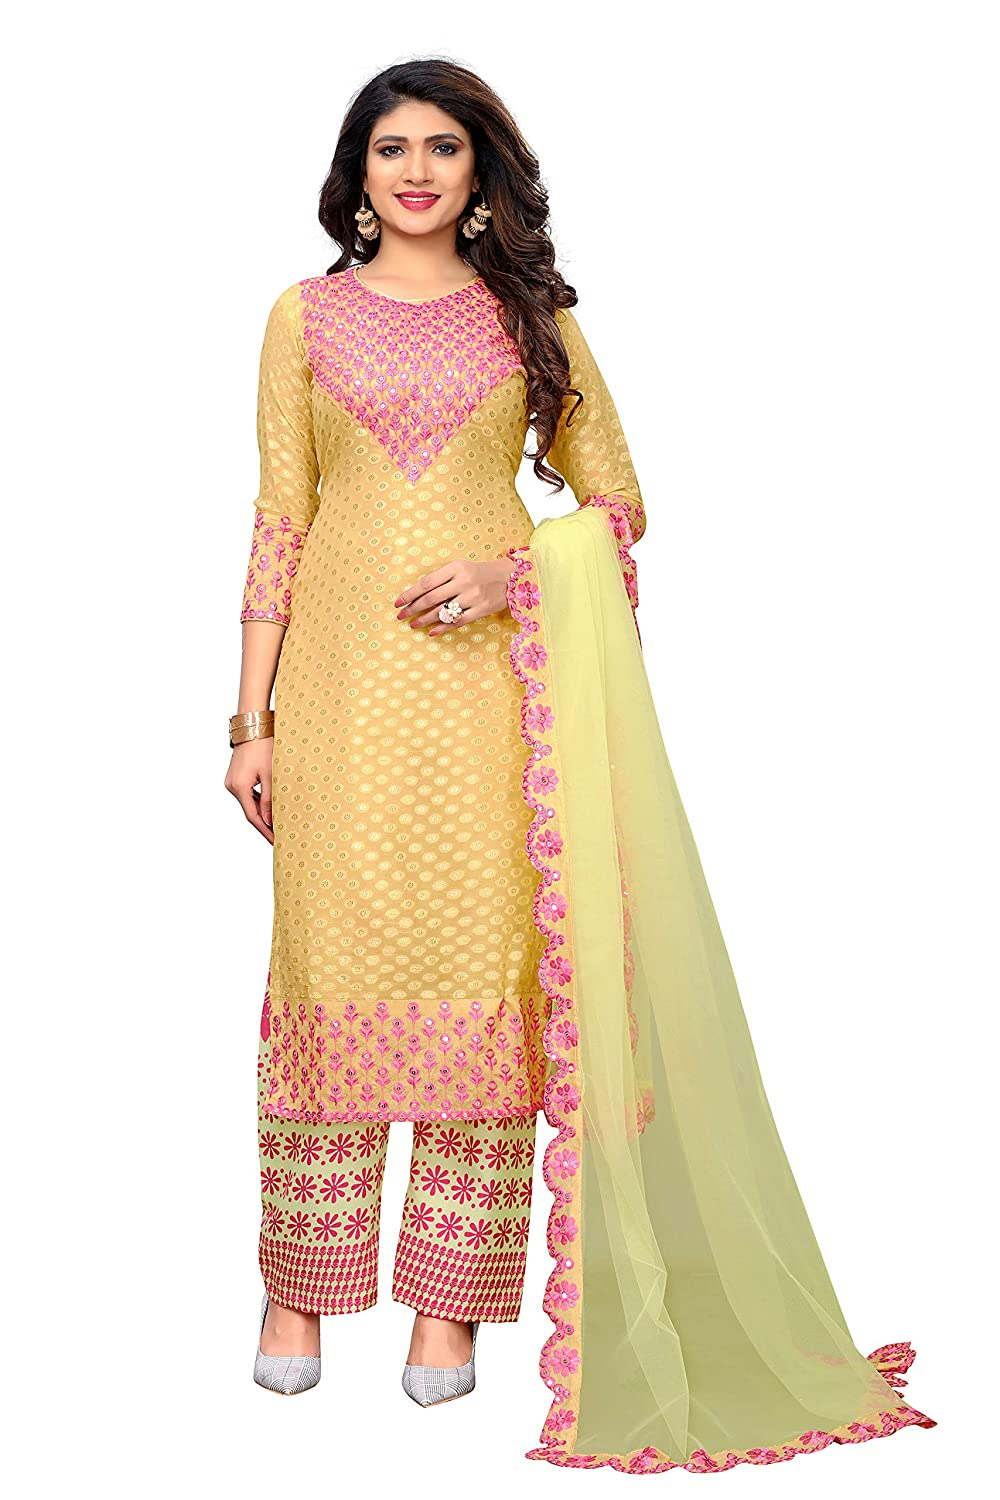 Glory Sarees Women's Semi Stitch Salwar Suit Material